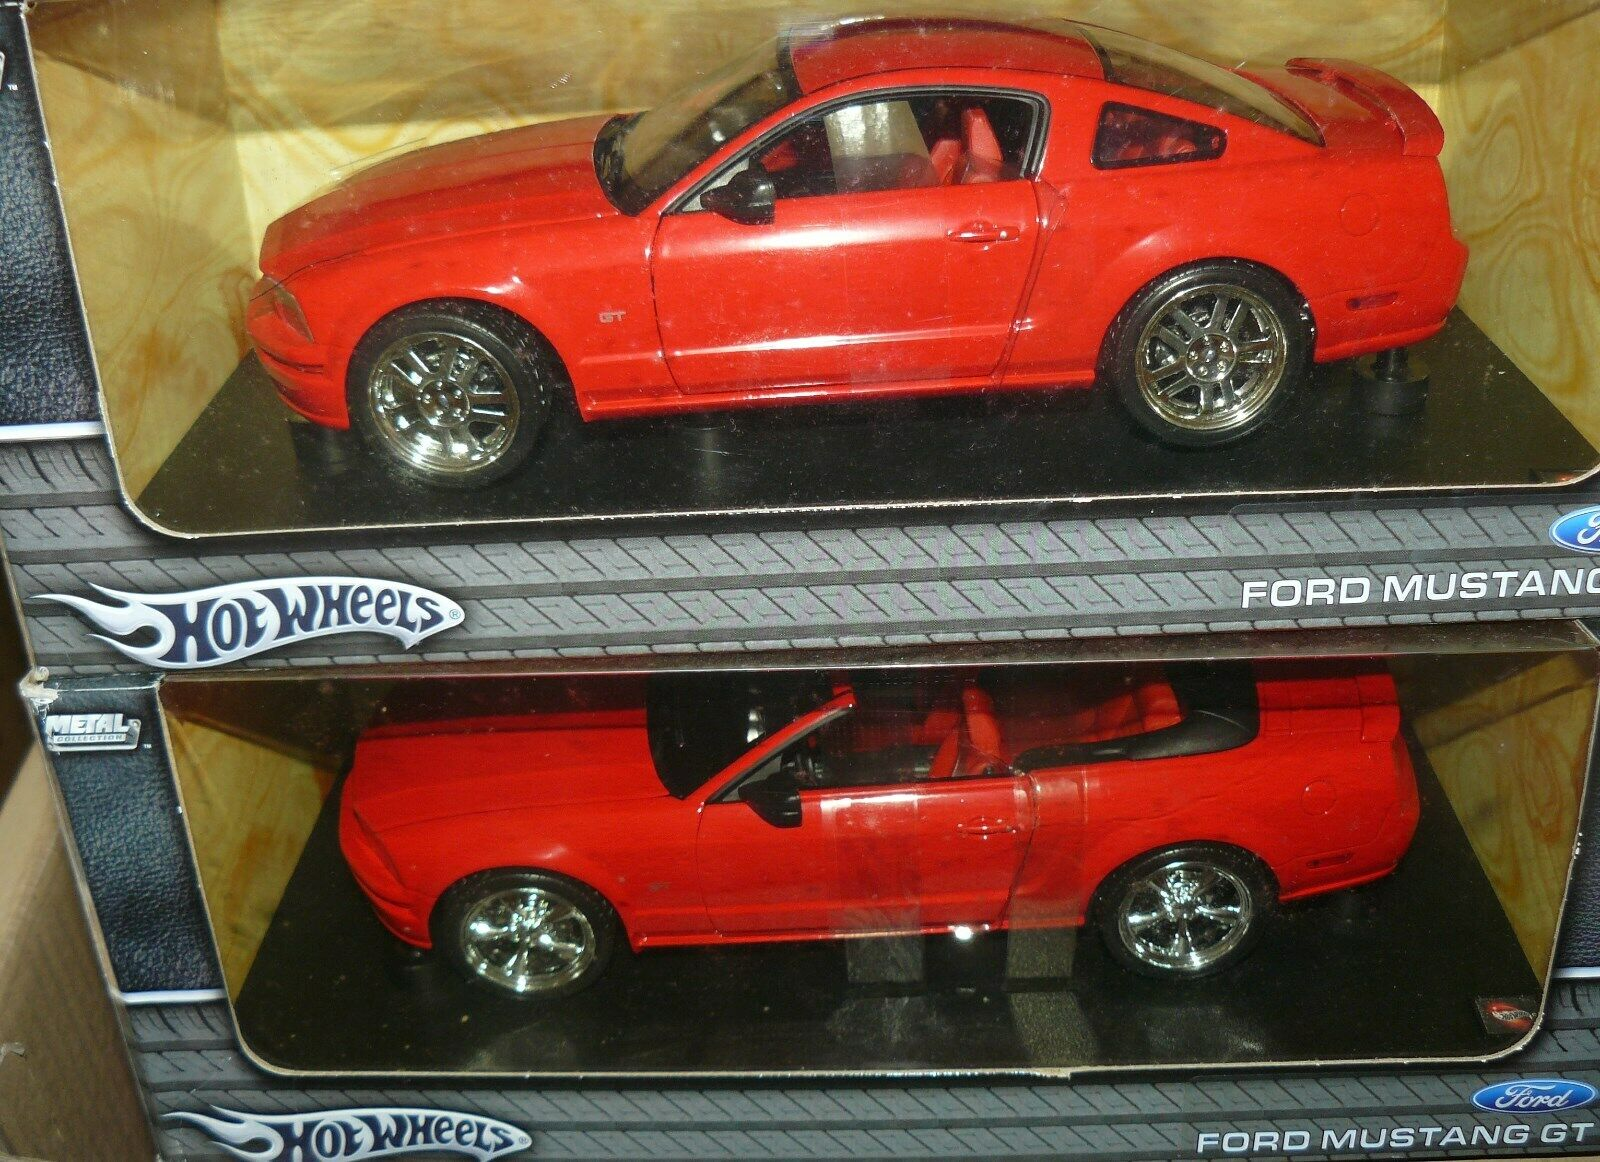 1 18 Piar de hot wheels rouge Mustangs, un coupé et un Cabriolet